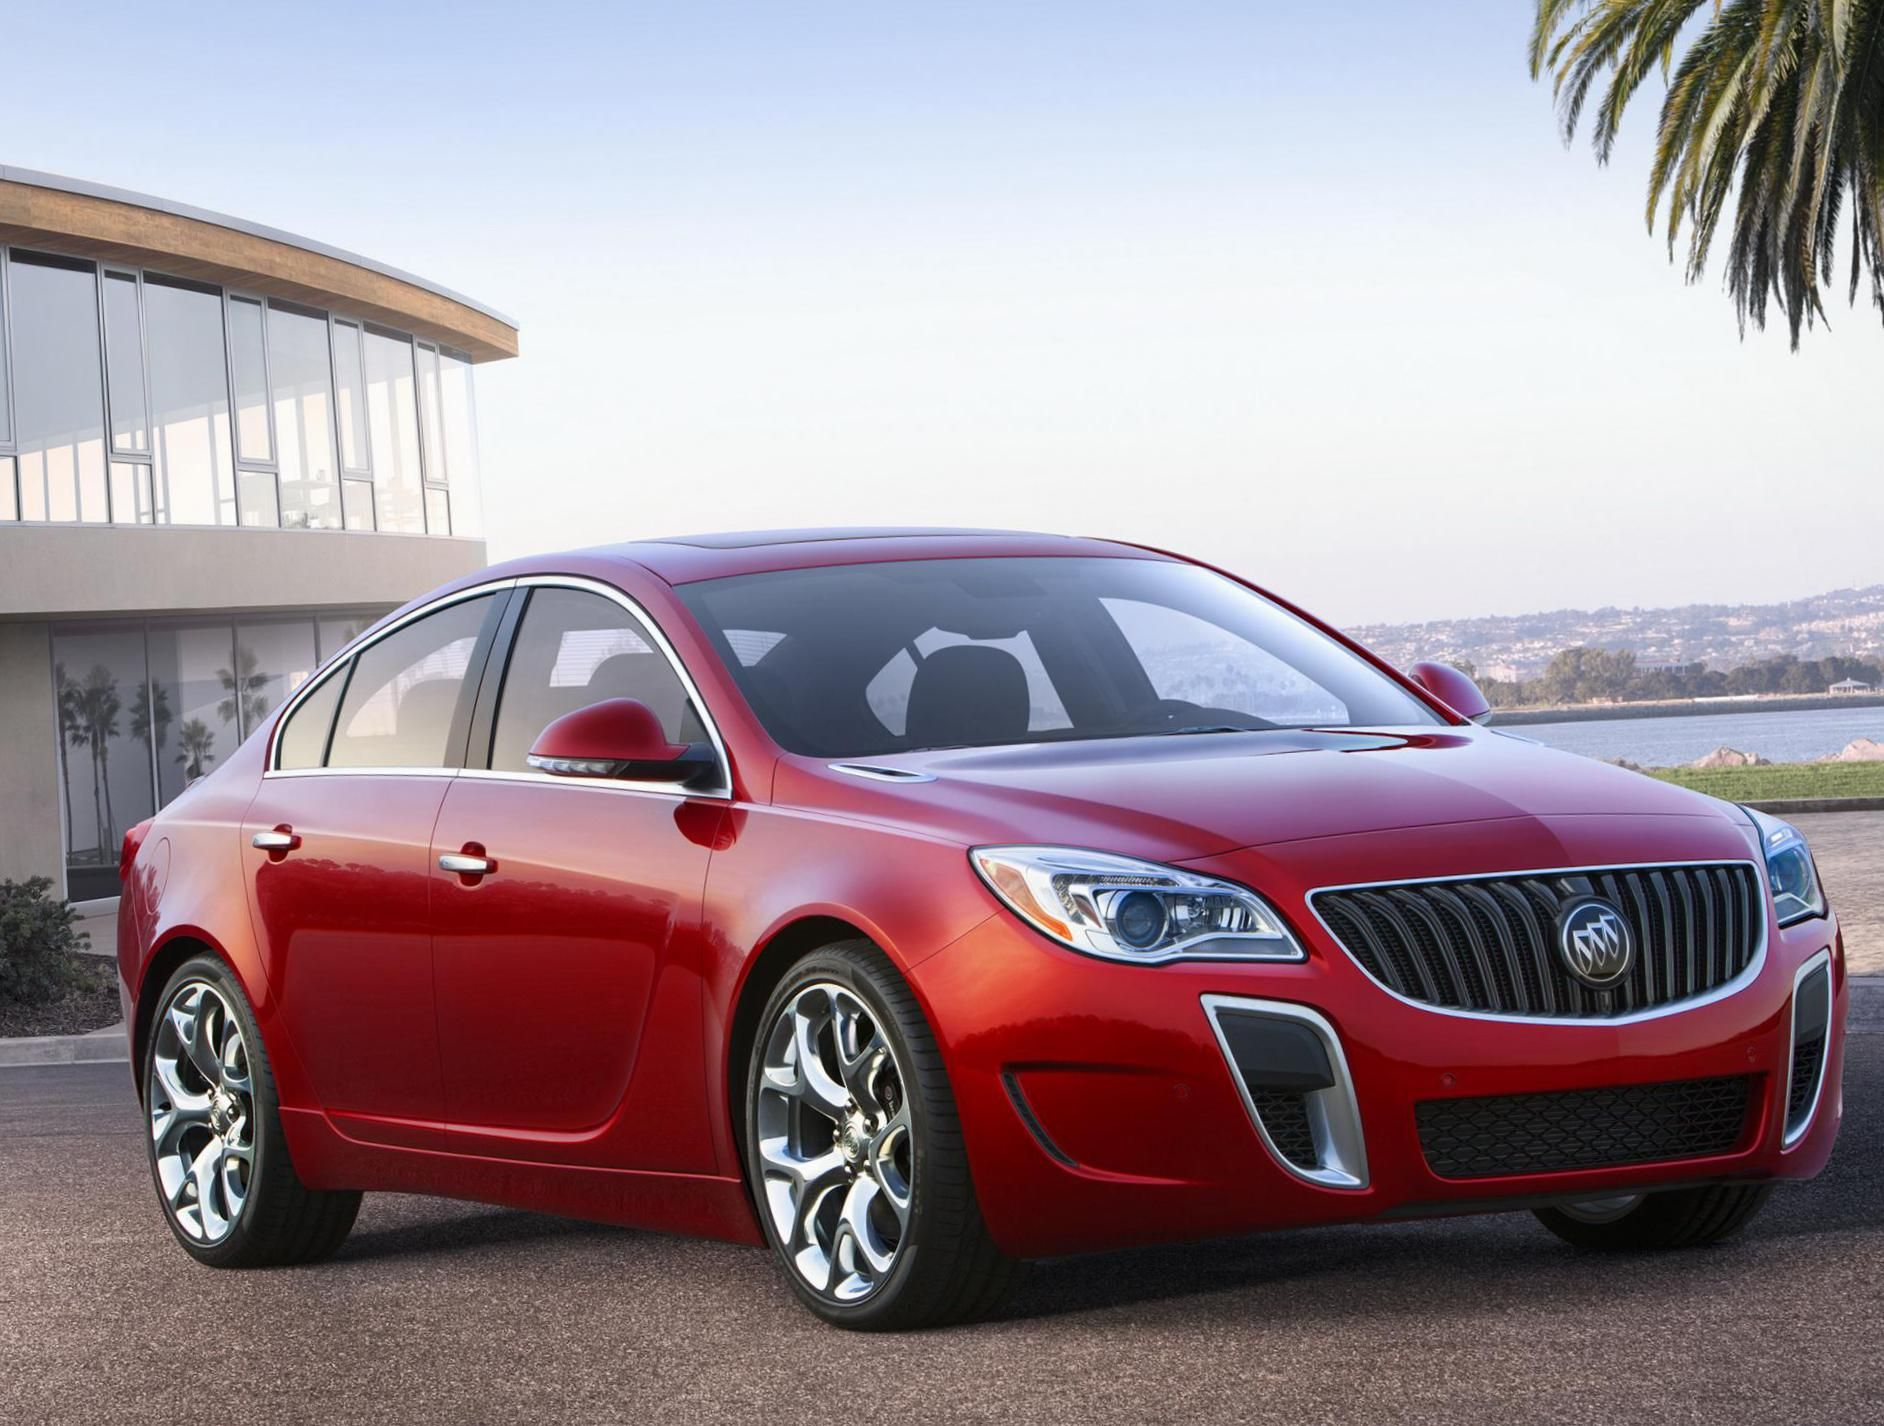 Pin By Alexandr Weber On Auto Pinterest Buick Cars And Buick Regal